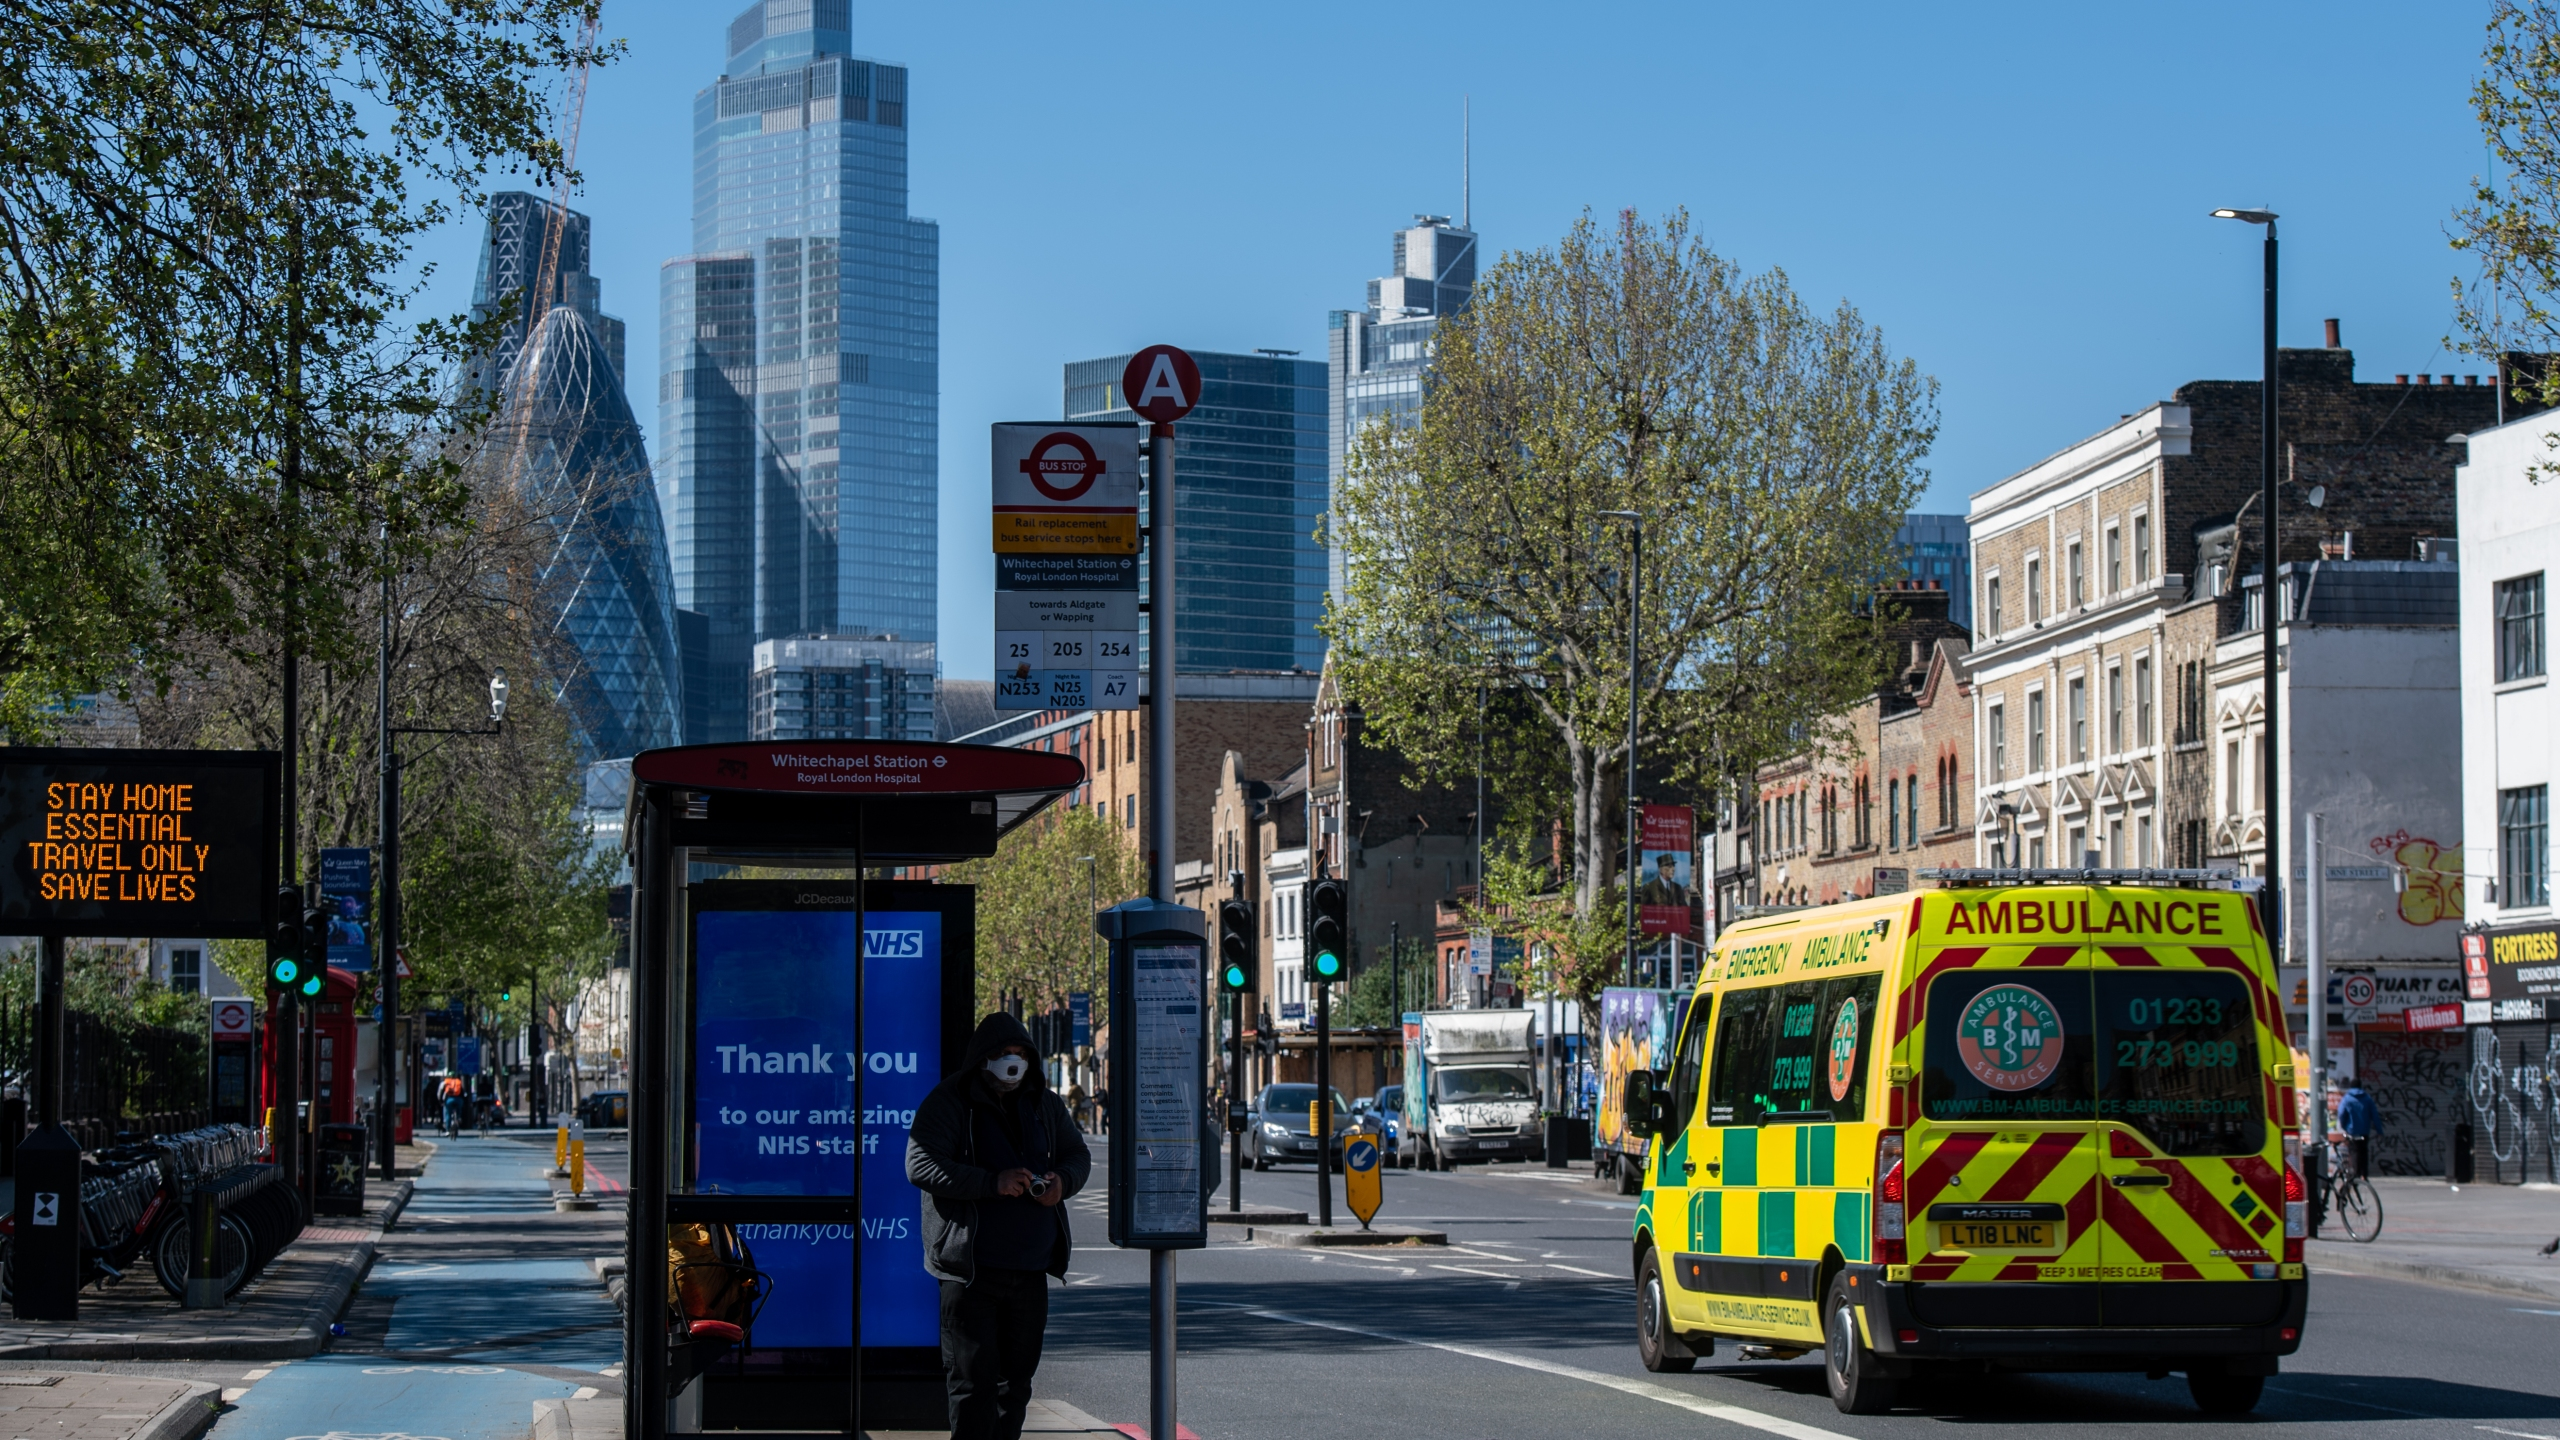 Skyscrapers are seen in the distance as a man wearing a face mask waits at a bus stop outside Royal London Hospital on April 19, 2020. (Chris J. Ratcliffe/Getty Images)